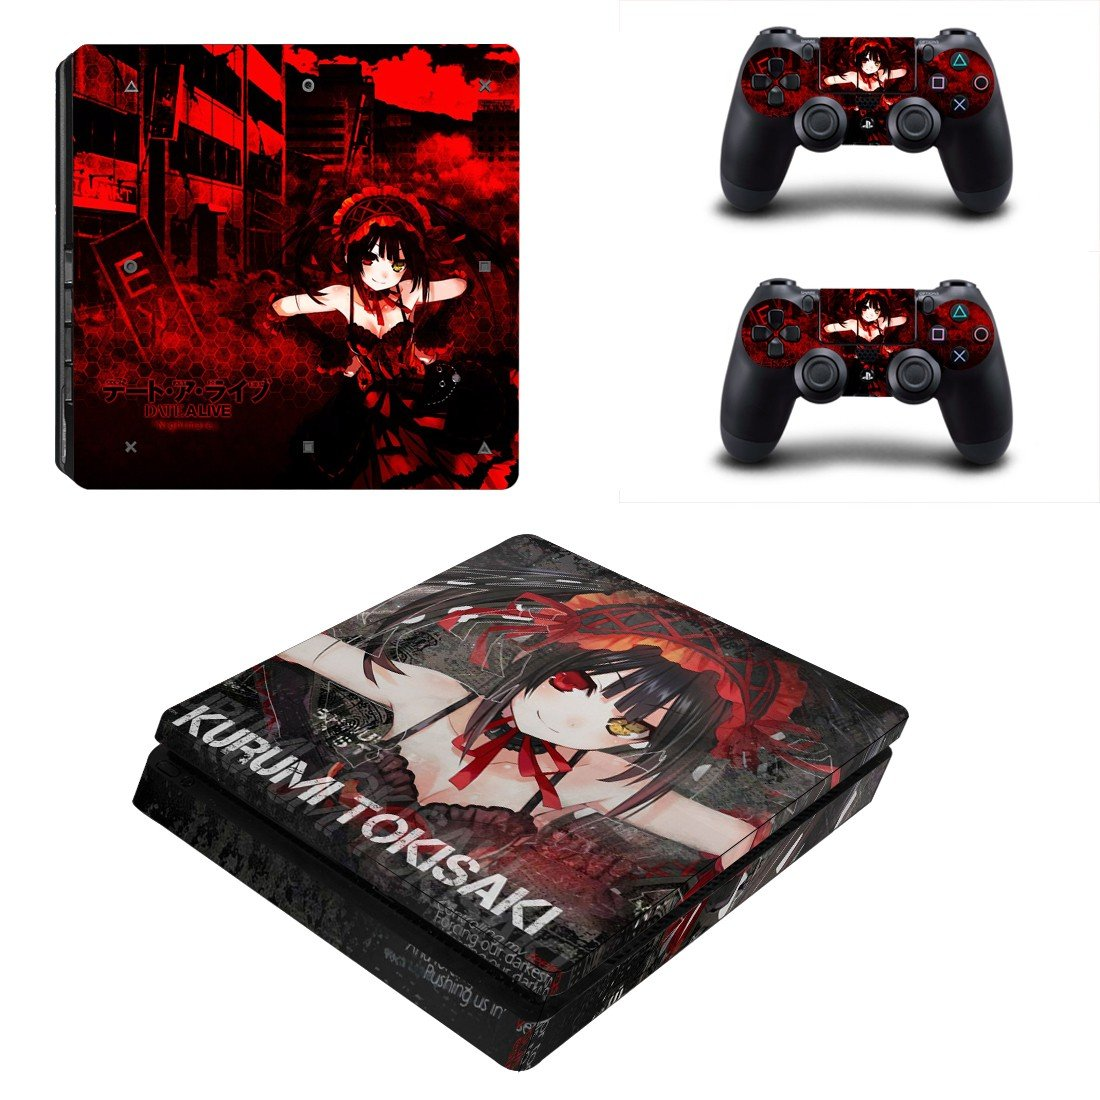 Kurumi tokisaki Play Station 4 slim skin decal for console and 2 controllers